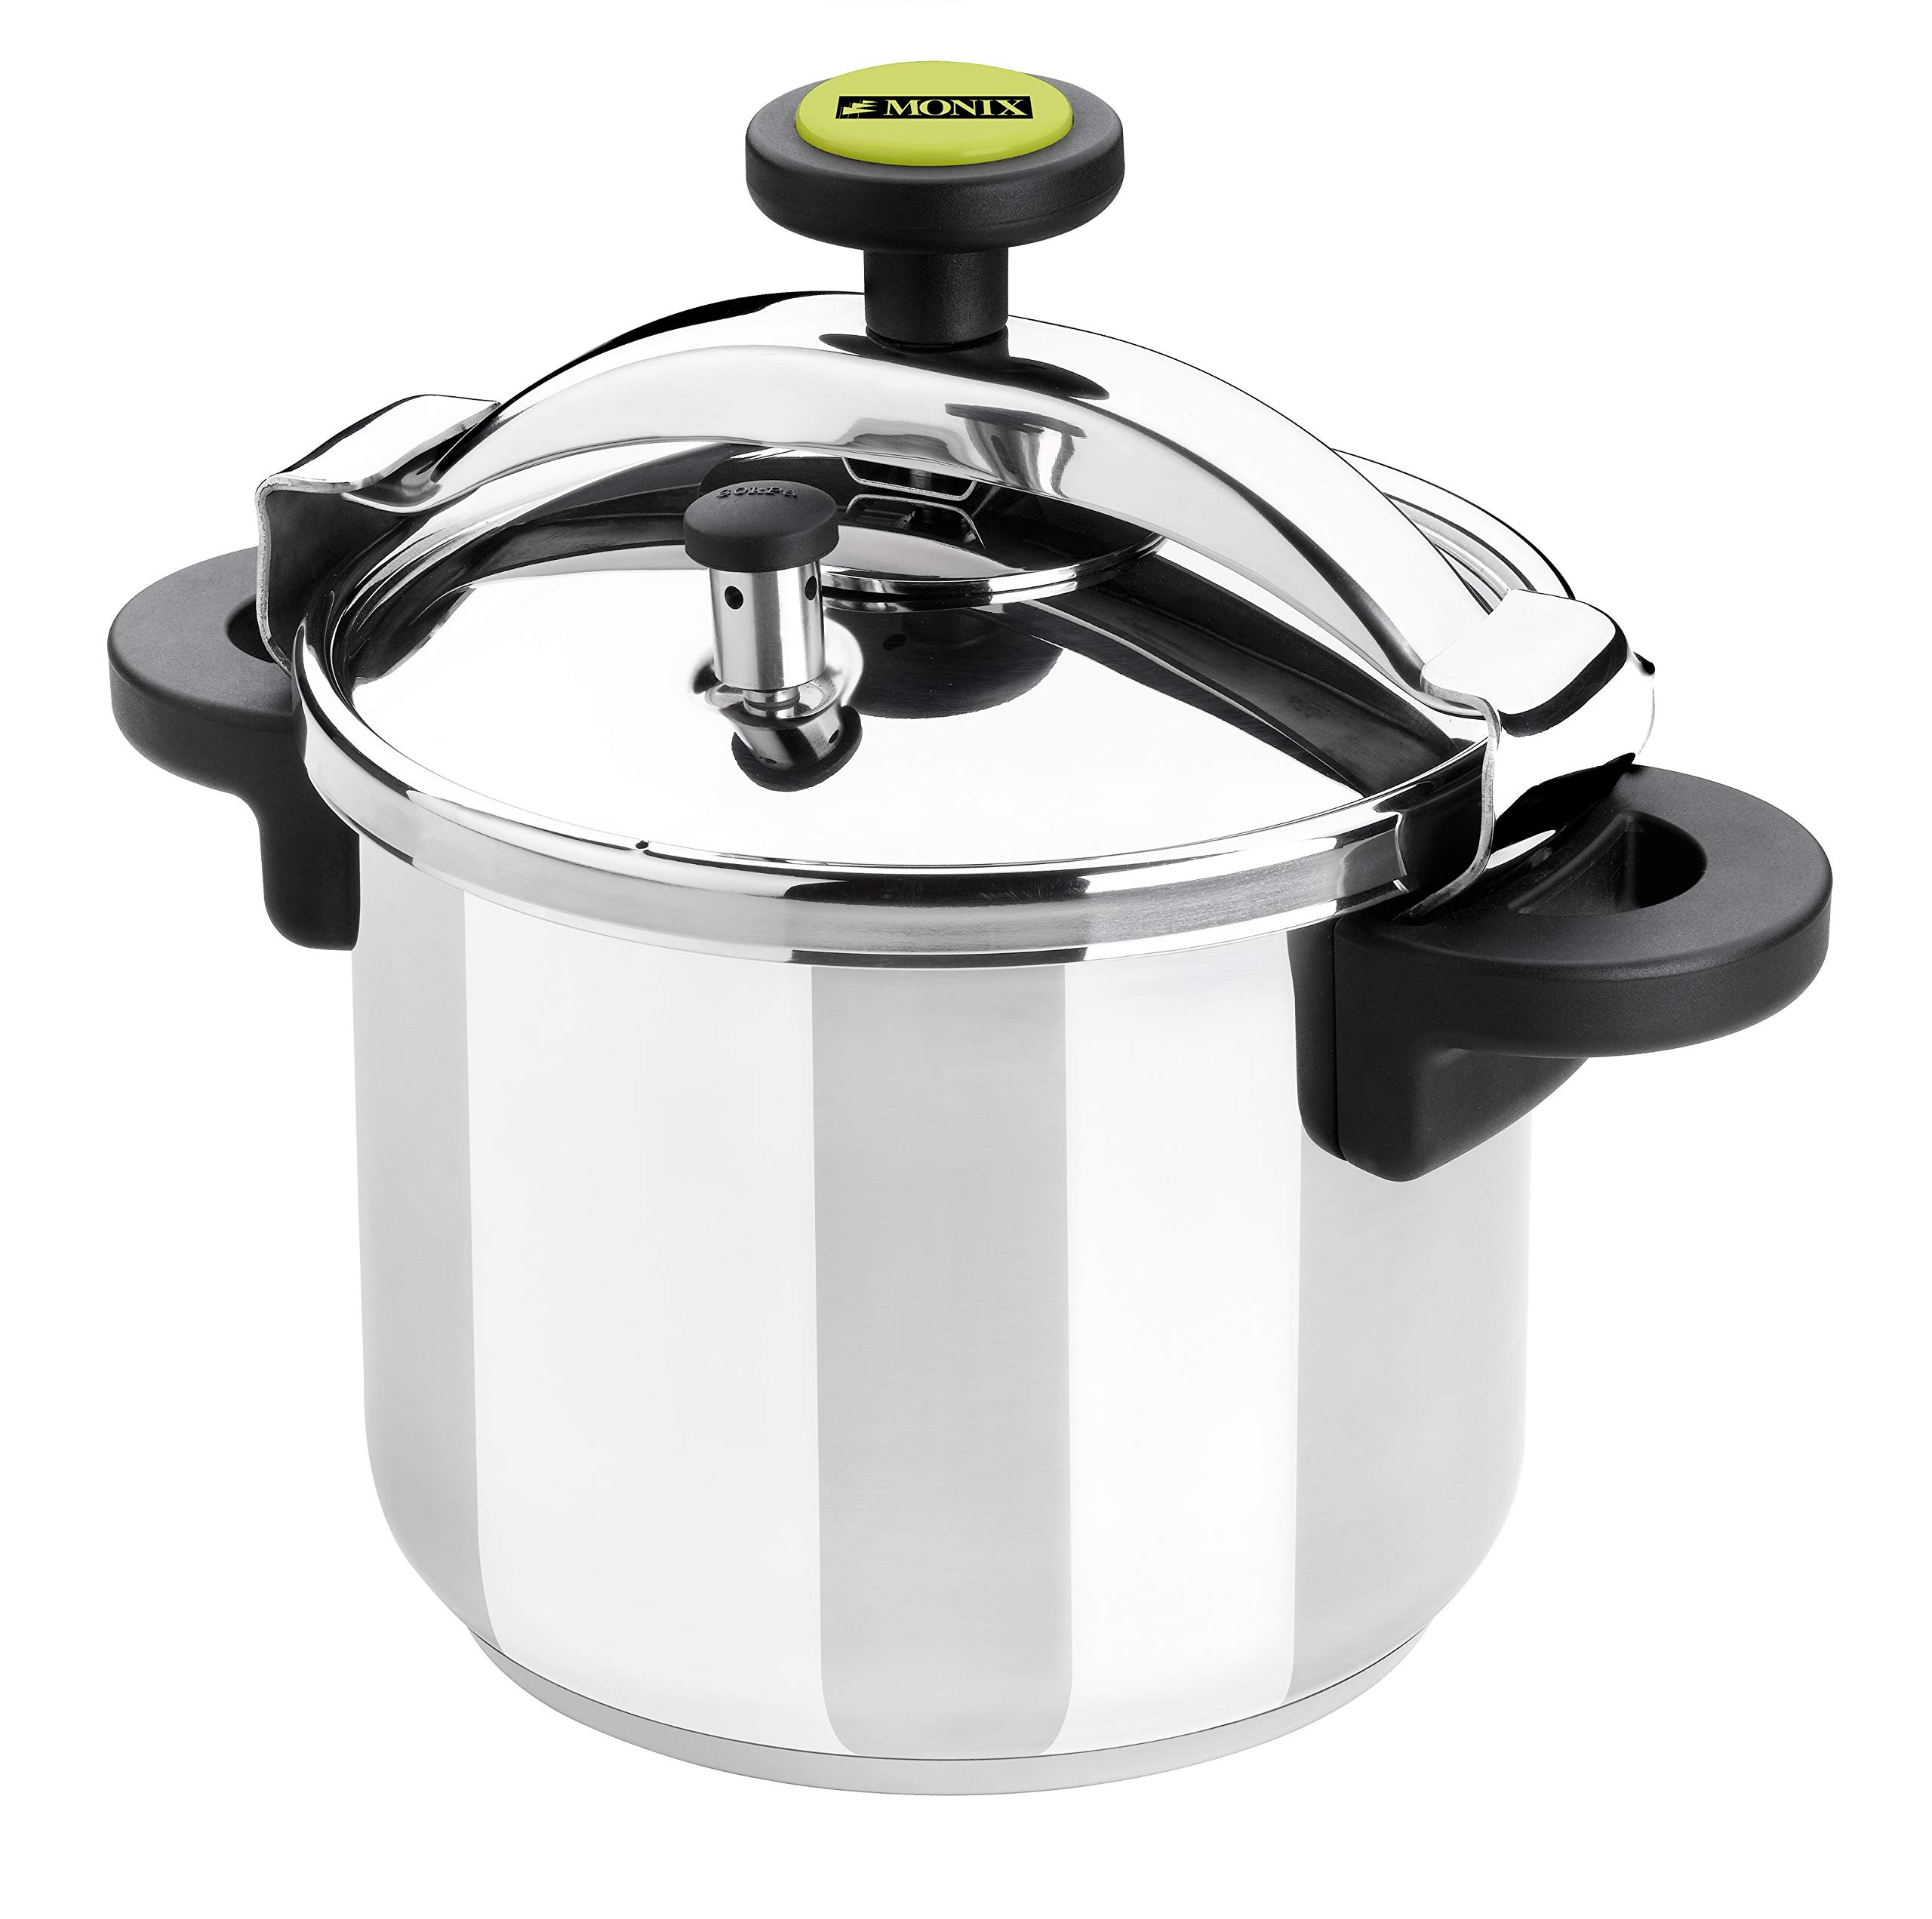 Monix Classica 10 Litre Pressure Cooker (All Cookers Including Induction), Stainless Steel, Silver, 24 cm